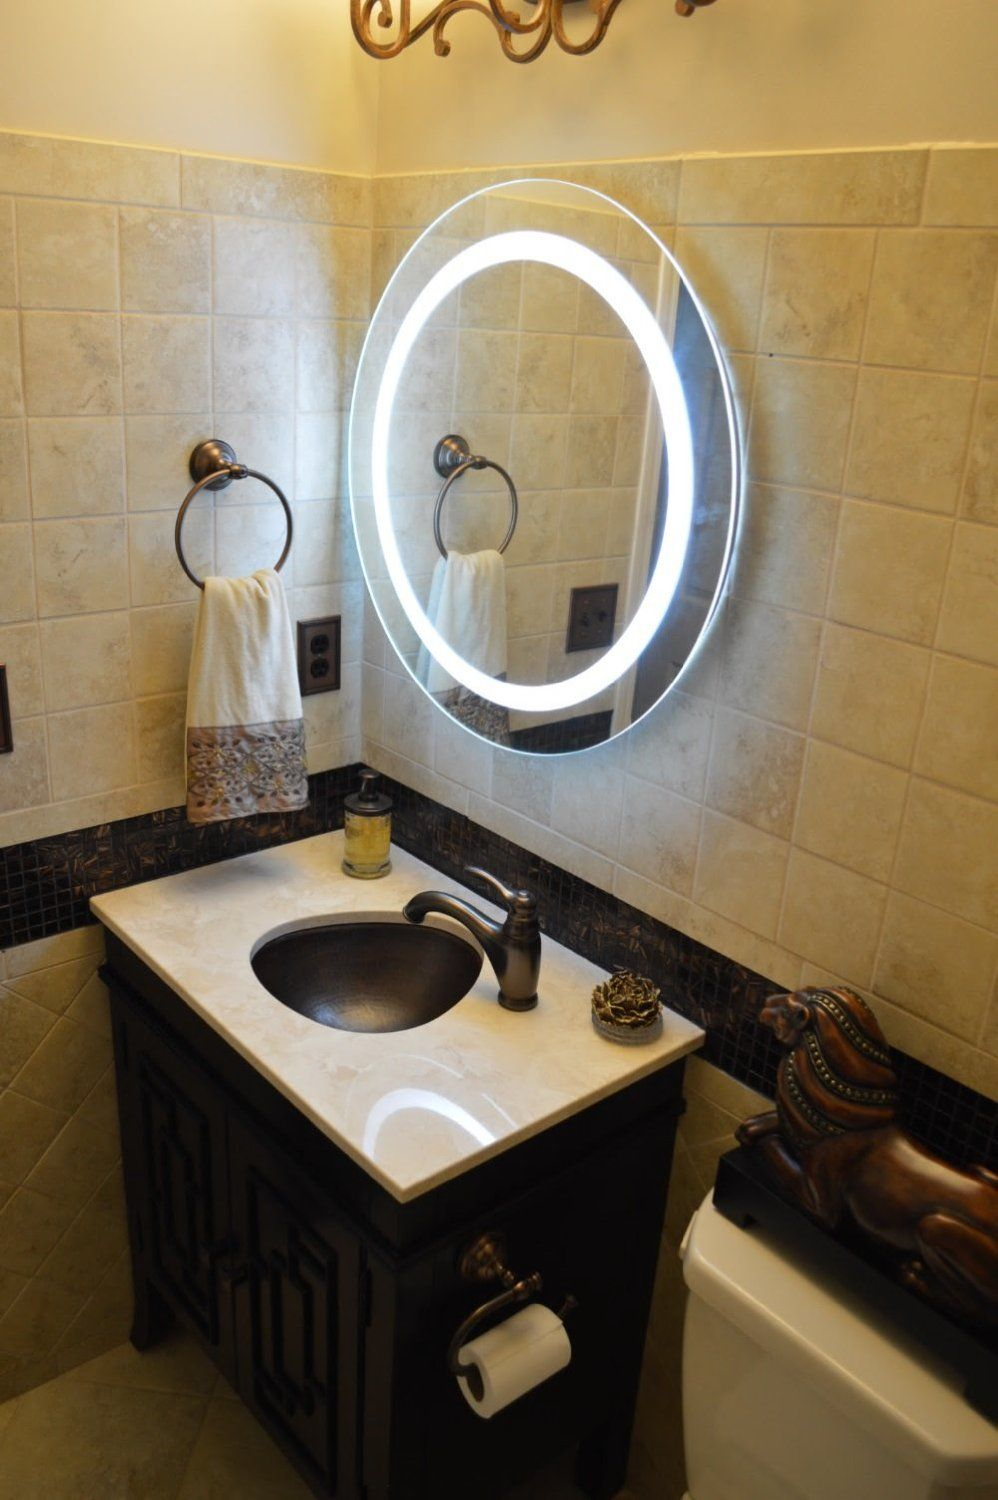 28 Wall Mounted Lighted Vanity Mirror Led Mam1d28 Commercial Grade Round Bathroom Mirrors